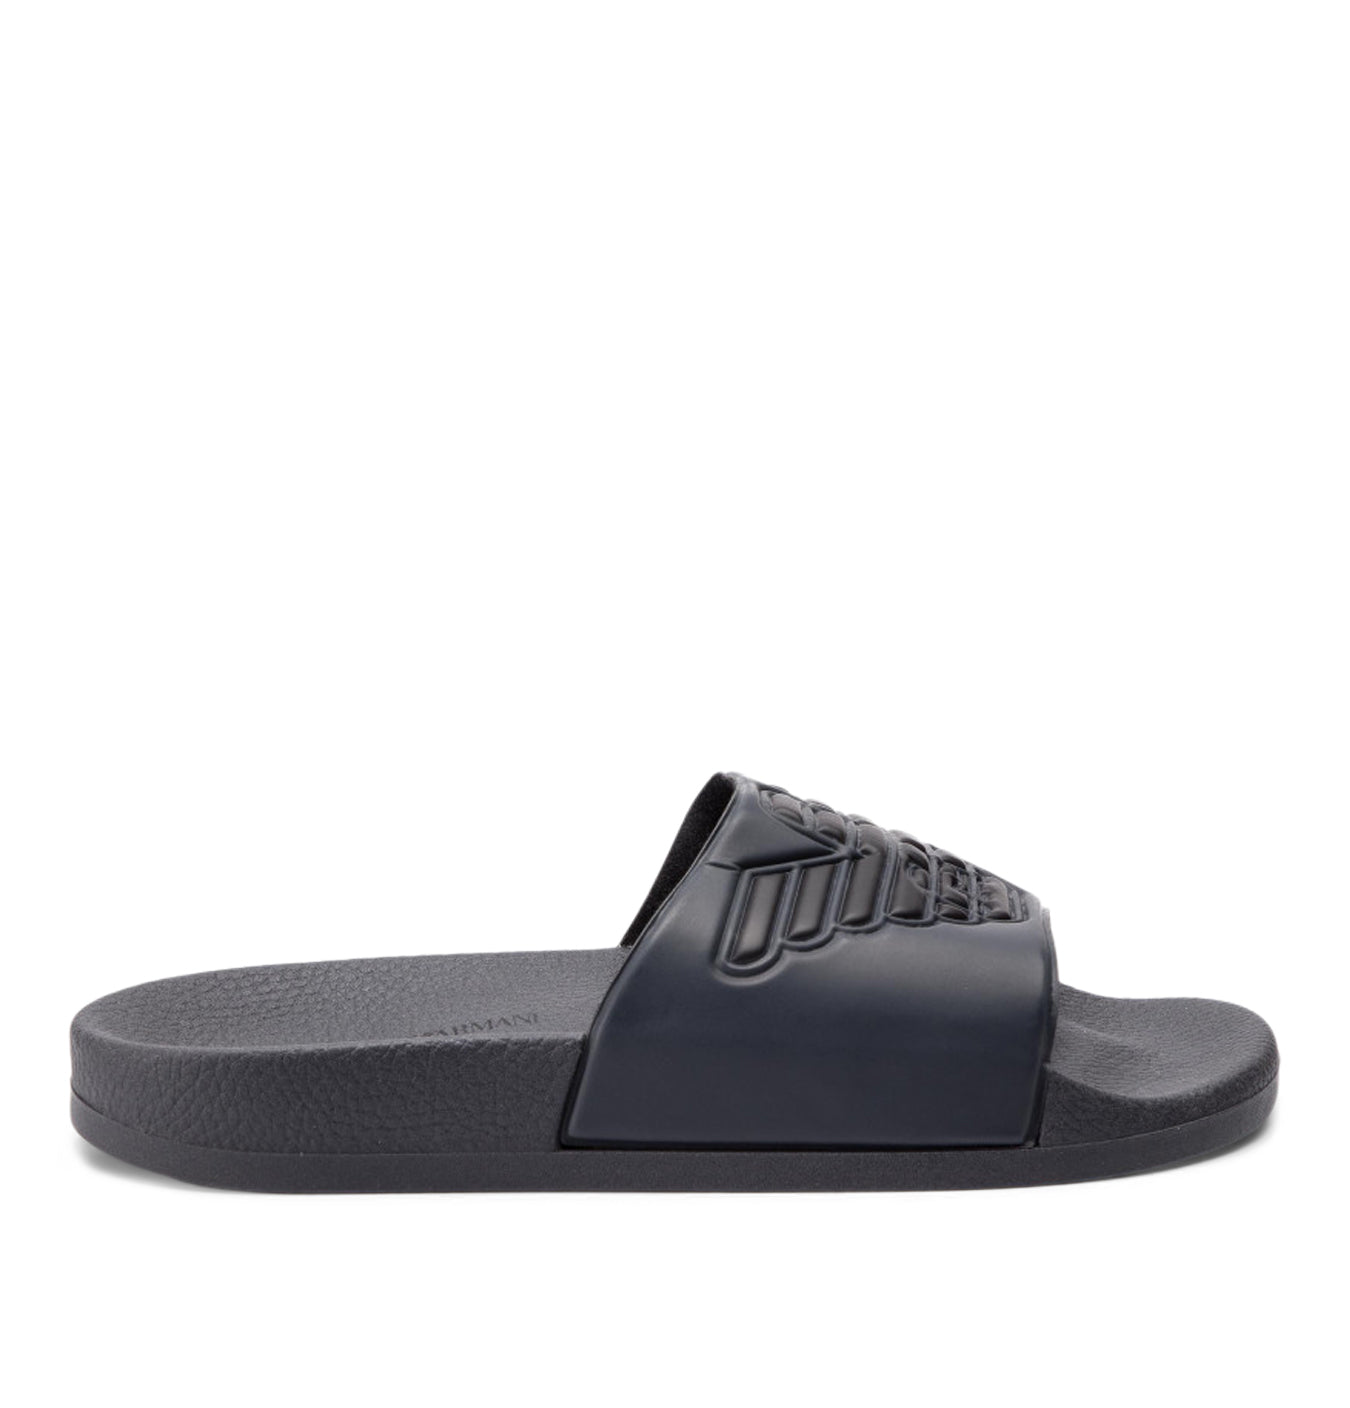 Black and Grey Slippers